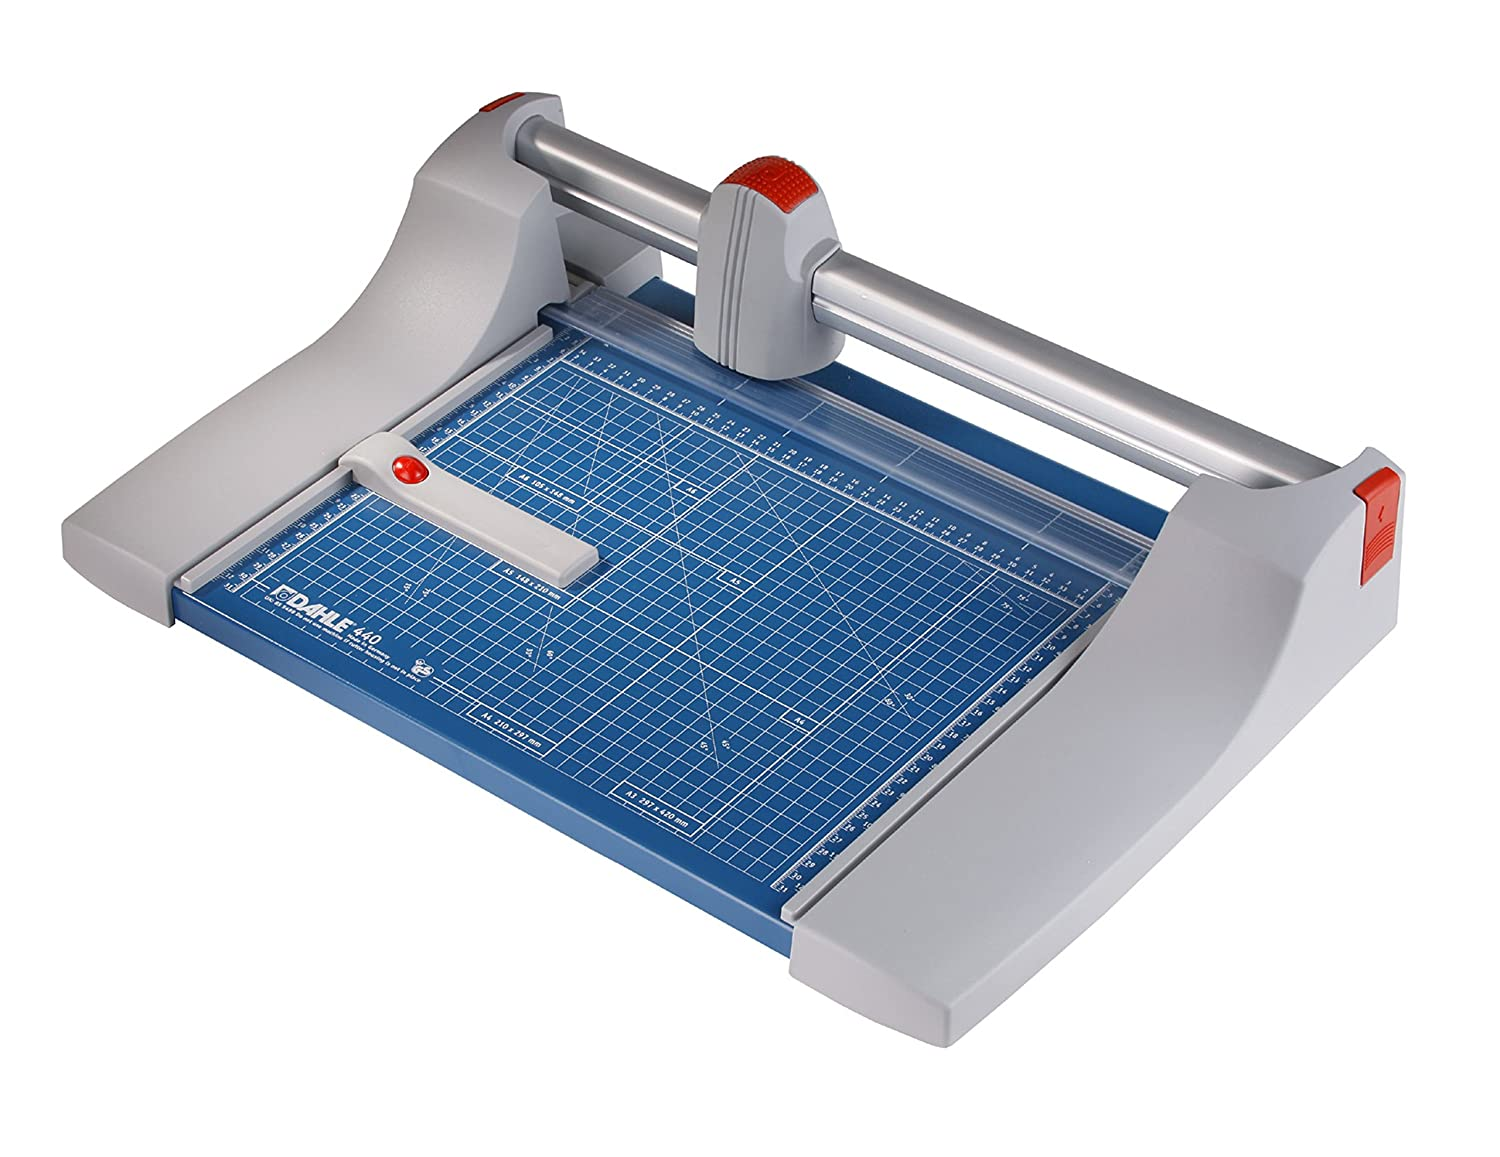 Dahle 440 Premium Rolling Trimmer, 14 1/8 Cut Length, 30 Sheet, Precision Self-Sharpening Blade, Cuts in Either Direction, Automatic Paper Clamp 14 1/8 Cut Length 00440-21310 4007885004402